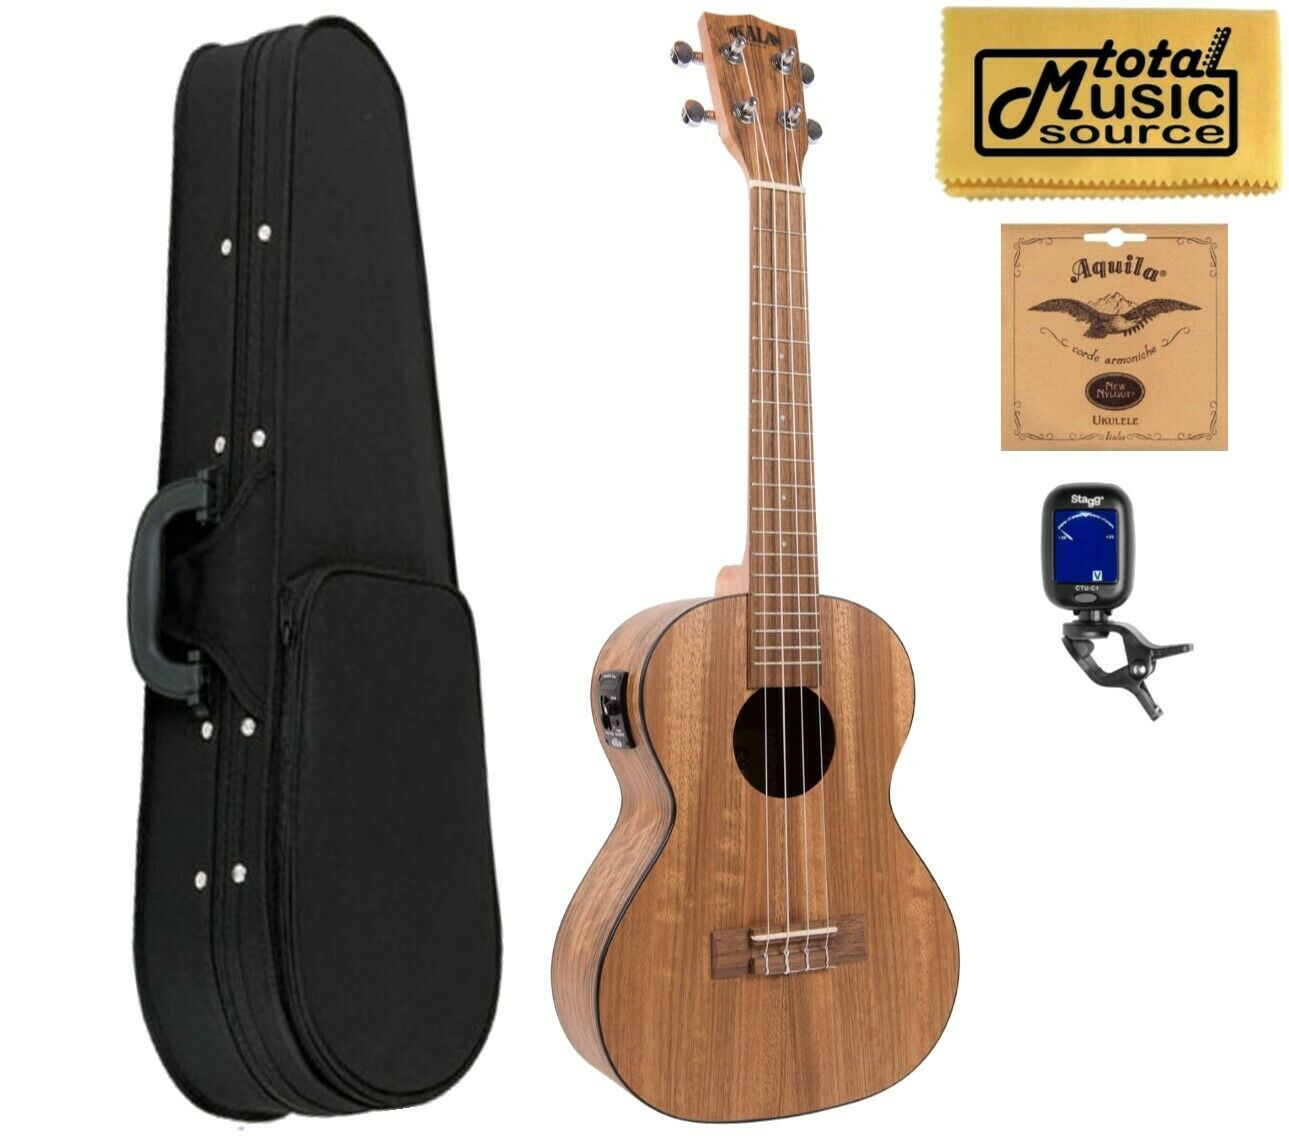 Kala KA-PWTE Tenor Pacific Walnuss Tenor Ukulele, Mit Soft Case Bundle